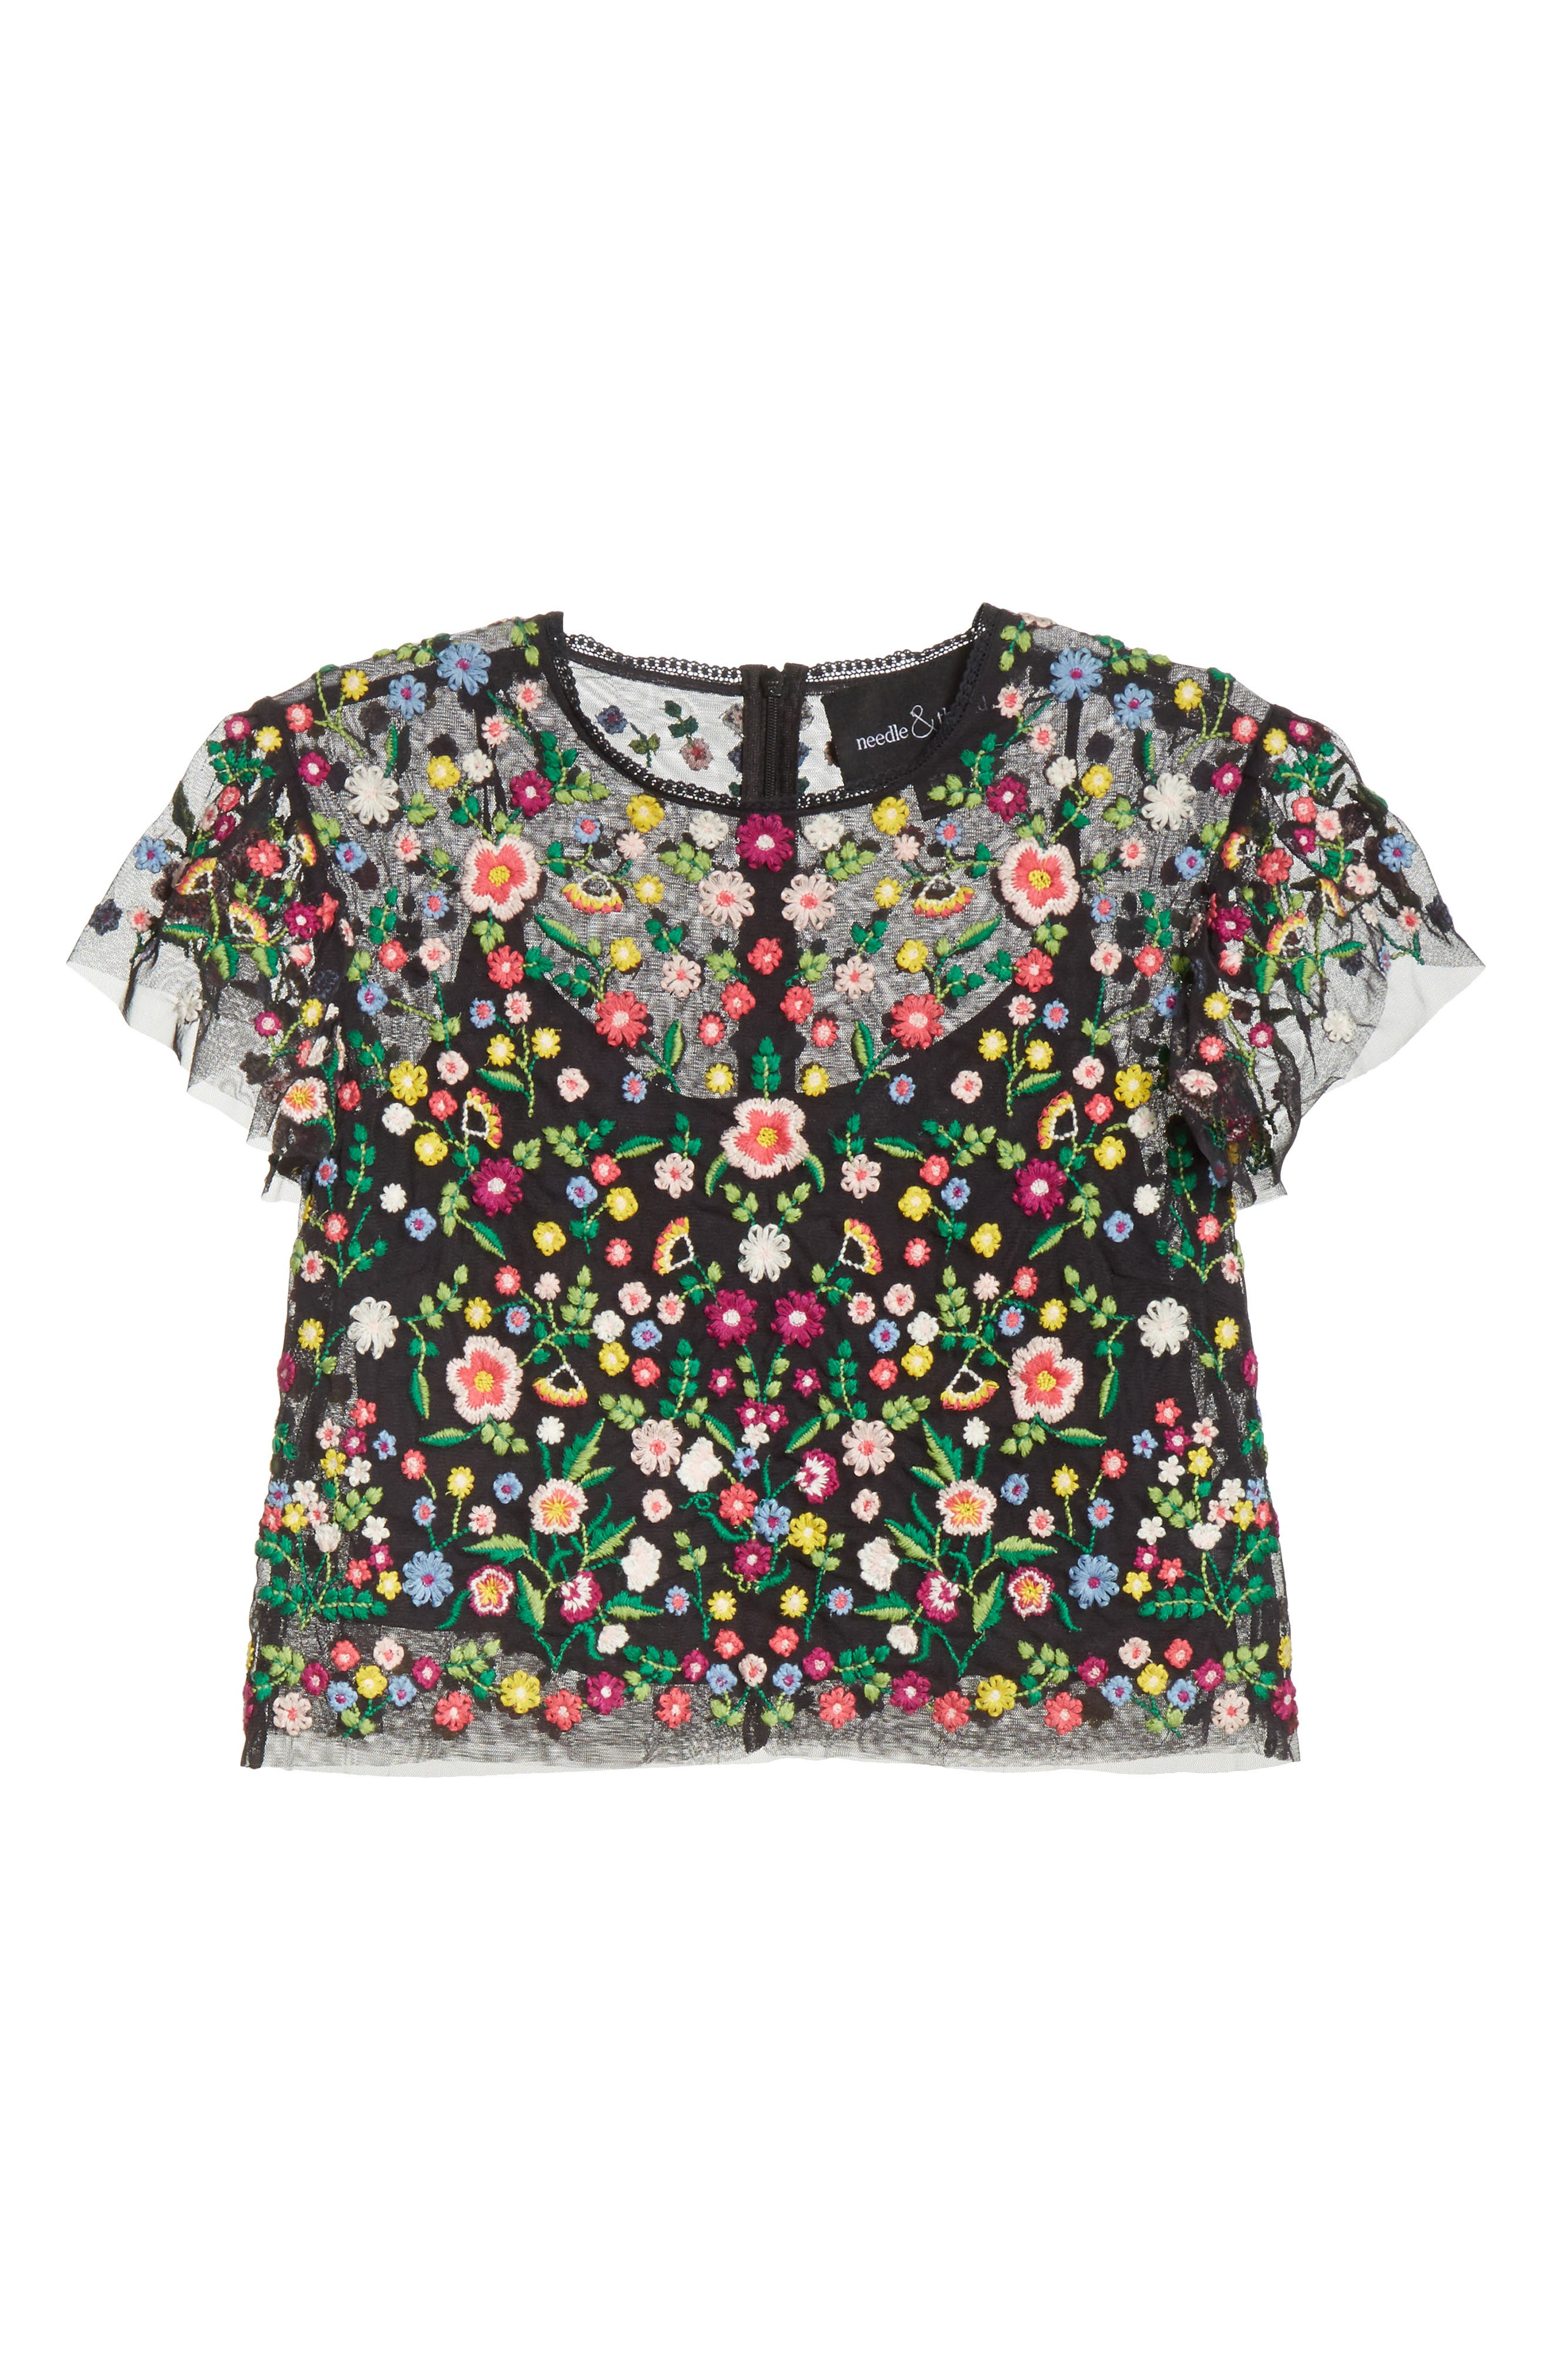 Lazy Daisy Crop Top,                             Alternate thumbnail 6, color,                             Washed Black